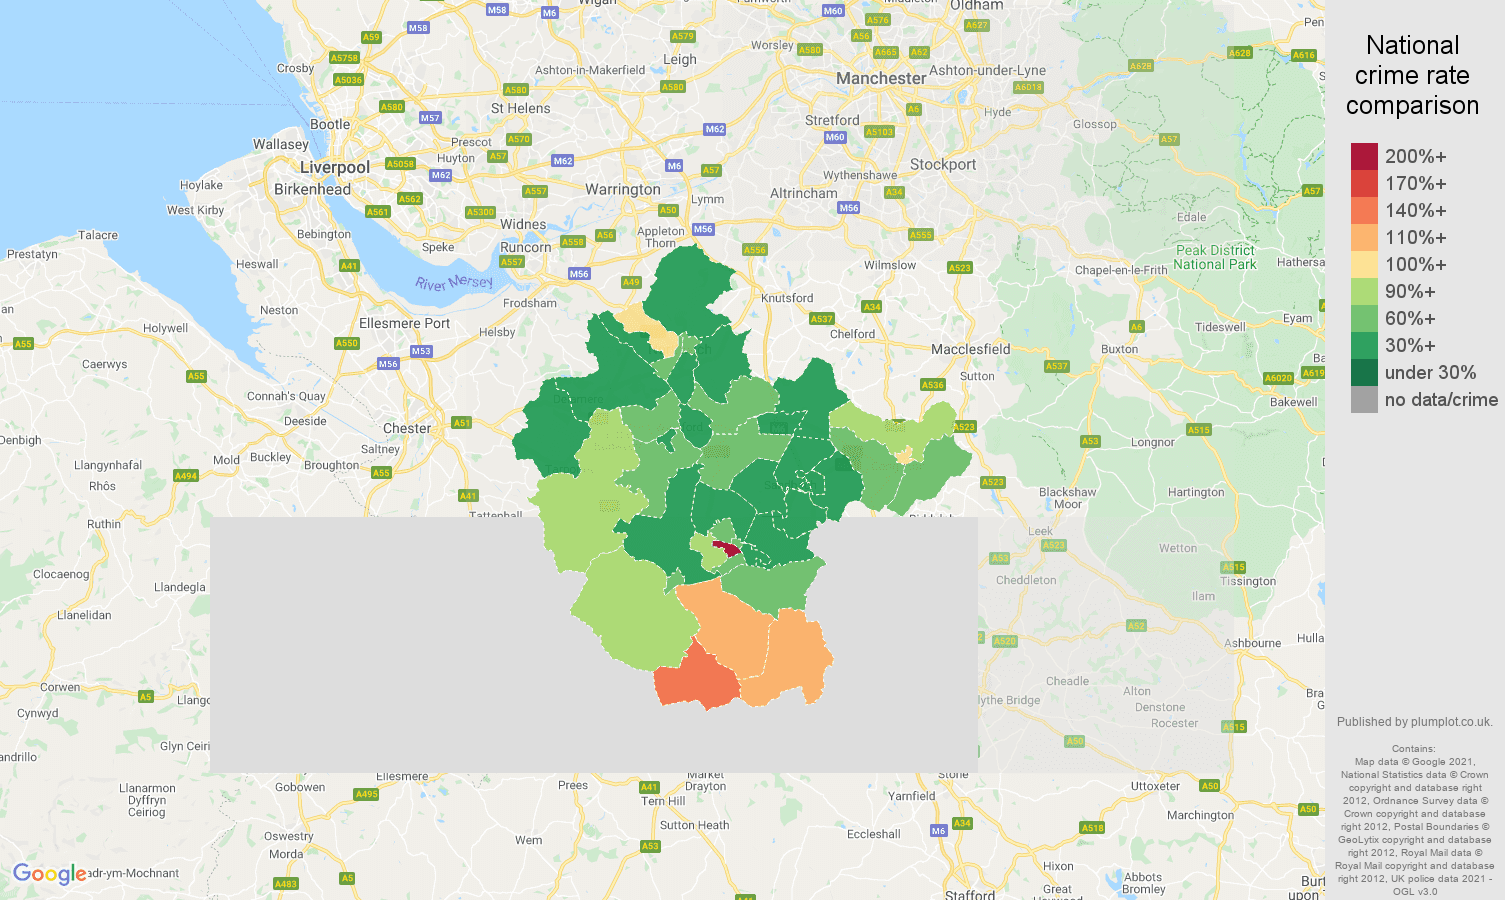 Crewe burglary crime rate comparison map